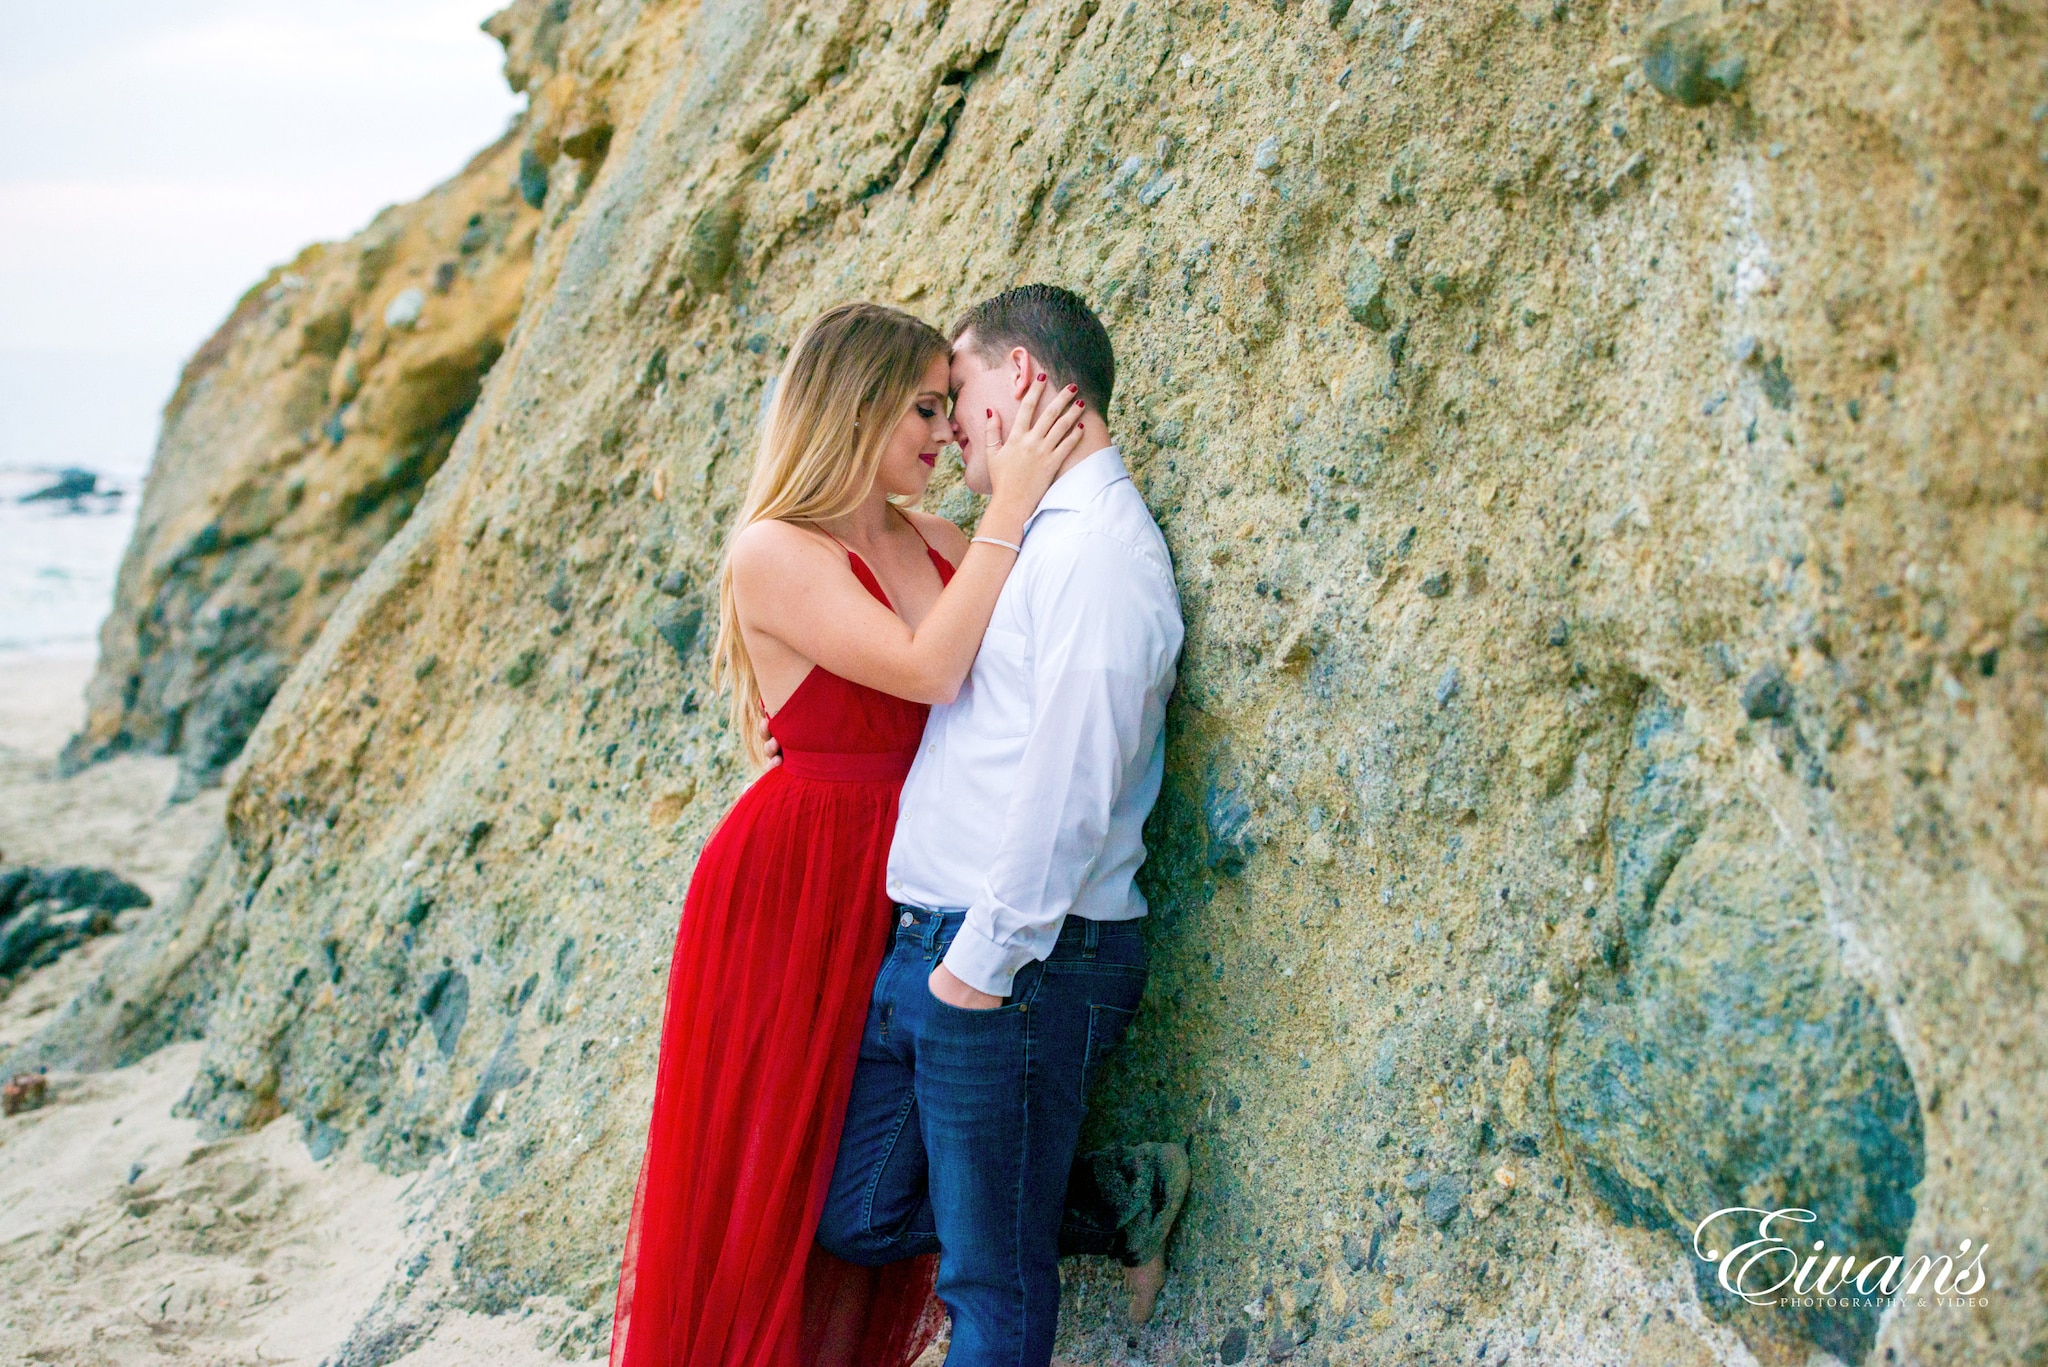 man and woman kissing on brown rock during daytime